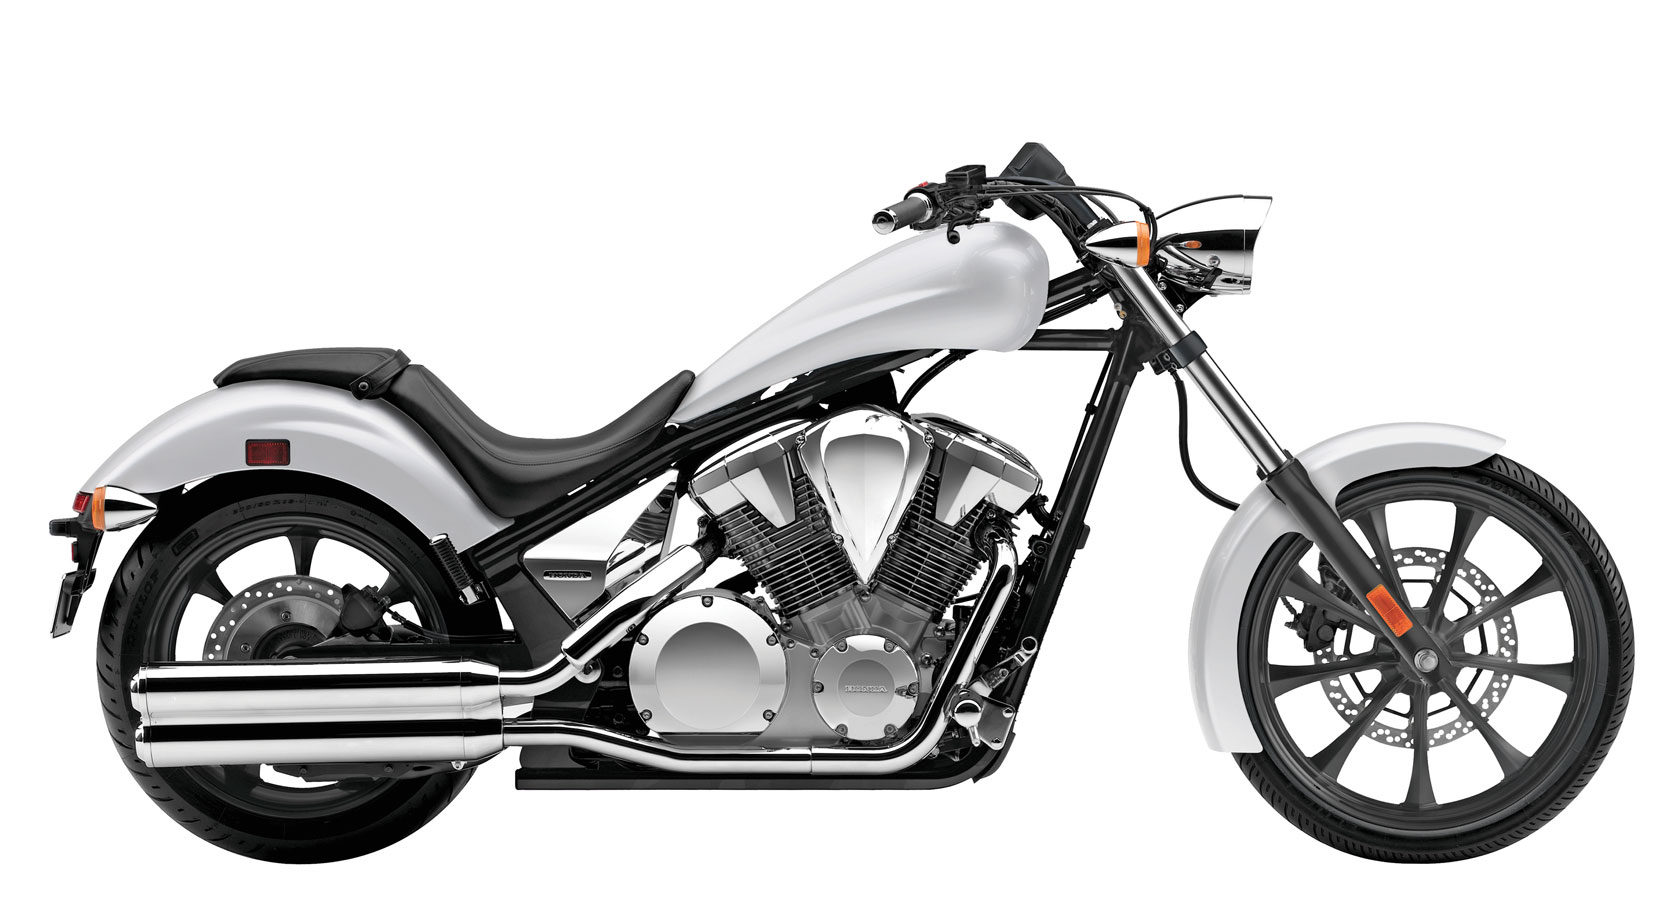 Honda Fury ABS 2015 images #83345